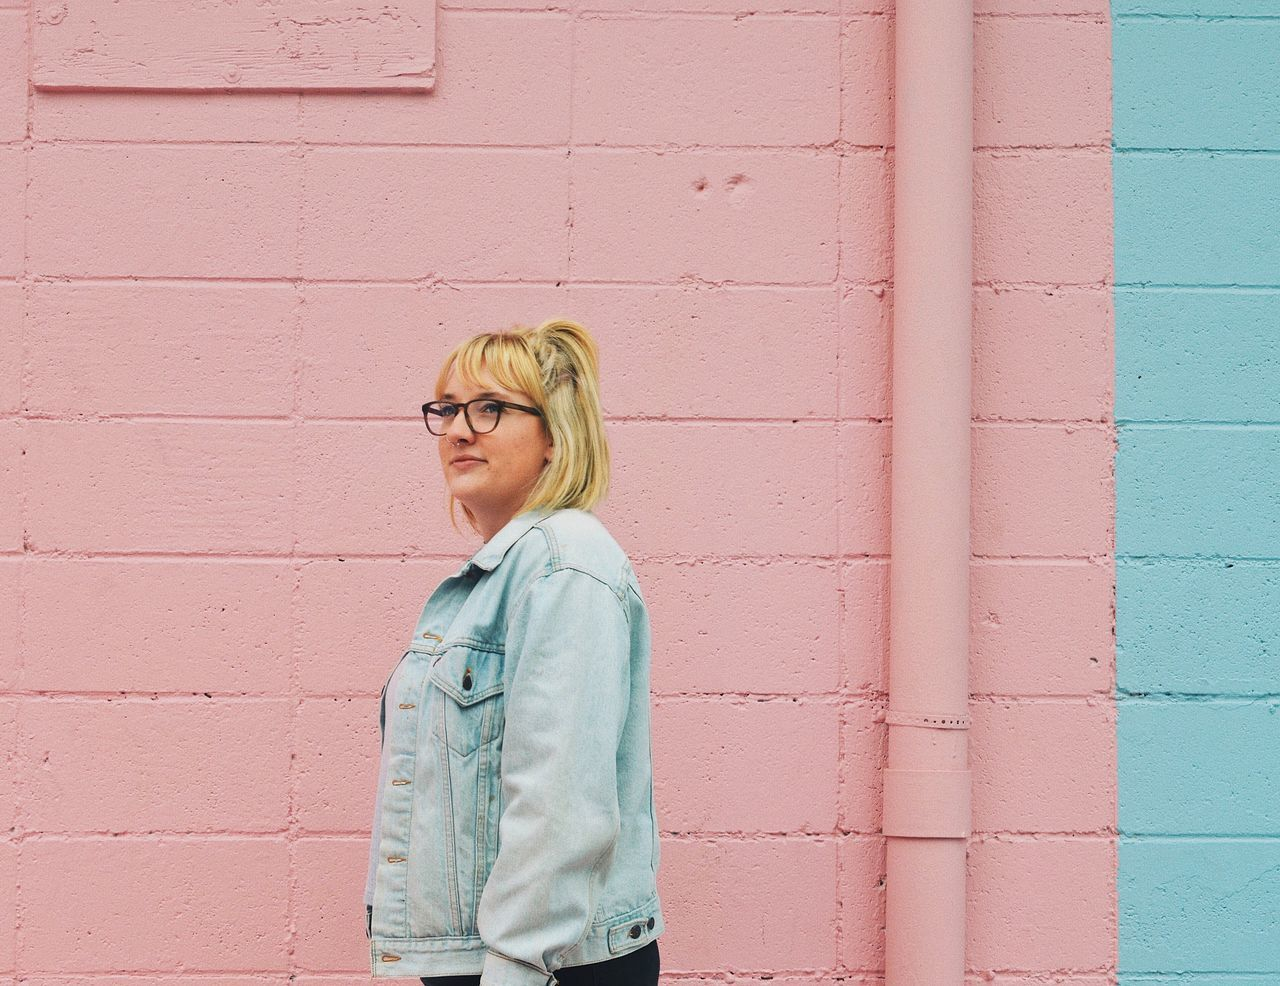 Cotton candy and eye candy Blond Hair Standing Eyeglasses  Sunglasses Brick Wall One Person Day Outdoors People Color Adventure Folk Girl Millennial Pink